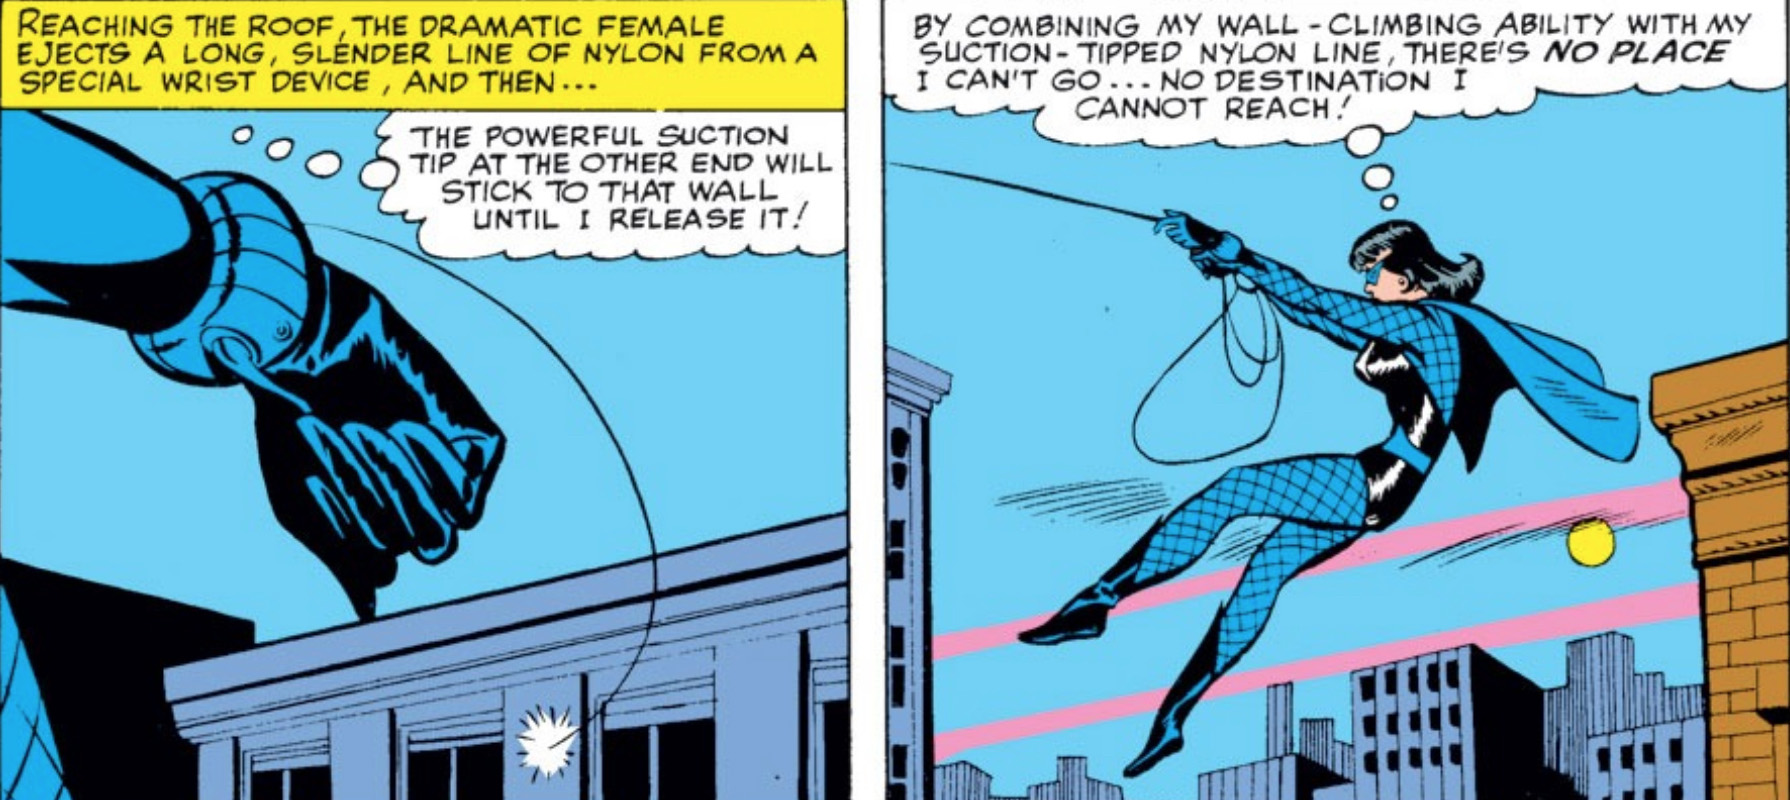 Black-Widow-Uses-Her-Widows-Line-in-Tales-of-Suspense-Issue-64